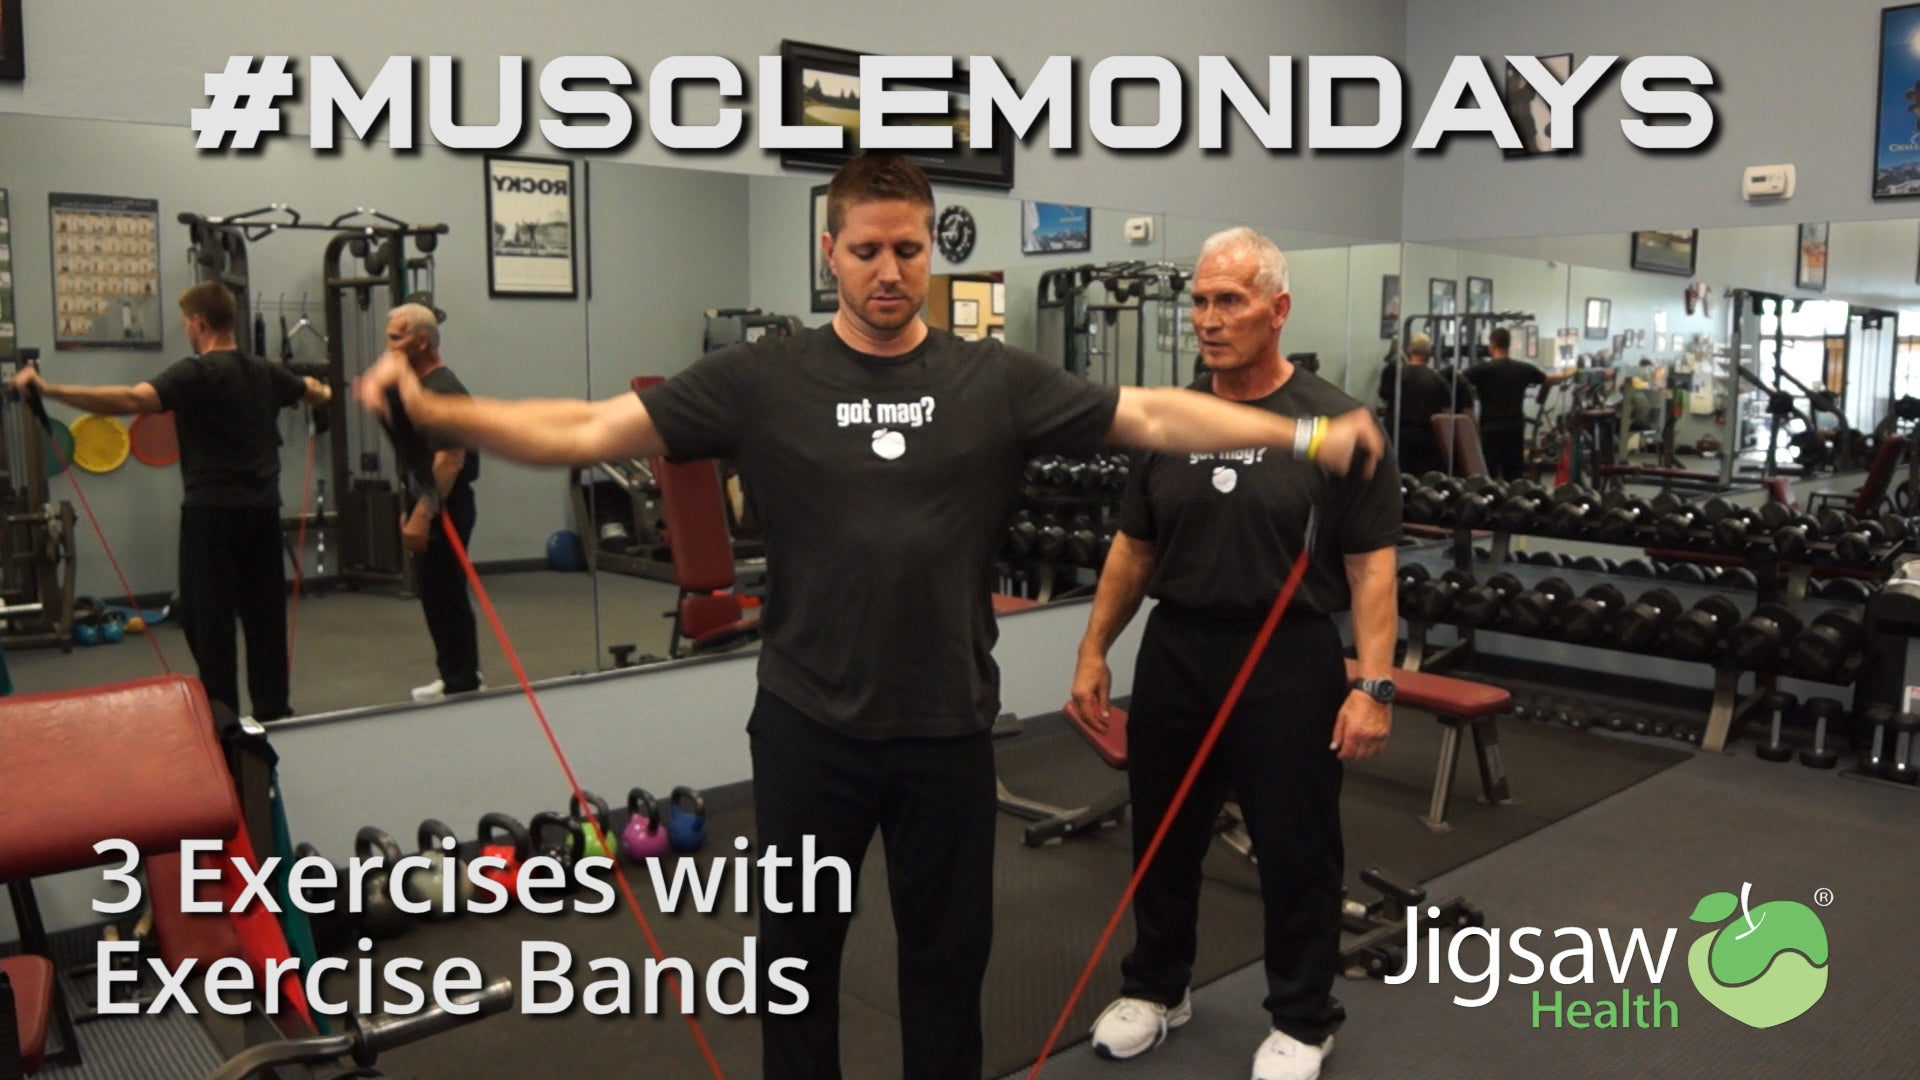 3 Exercises with Exercise Bands | #MuscleMonday